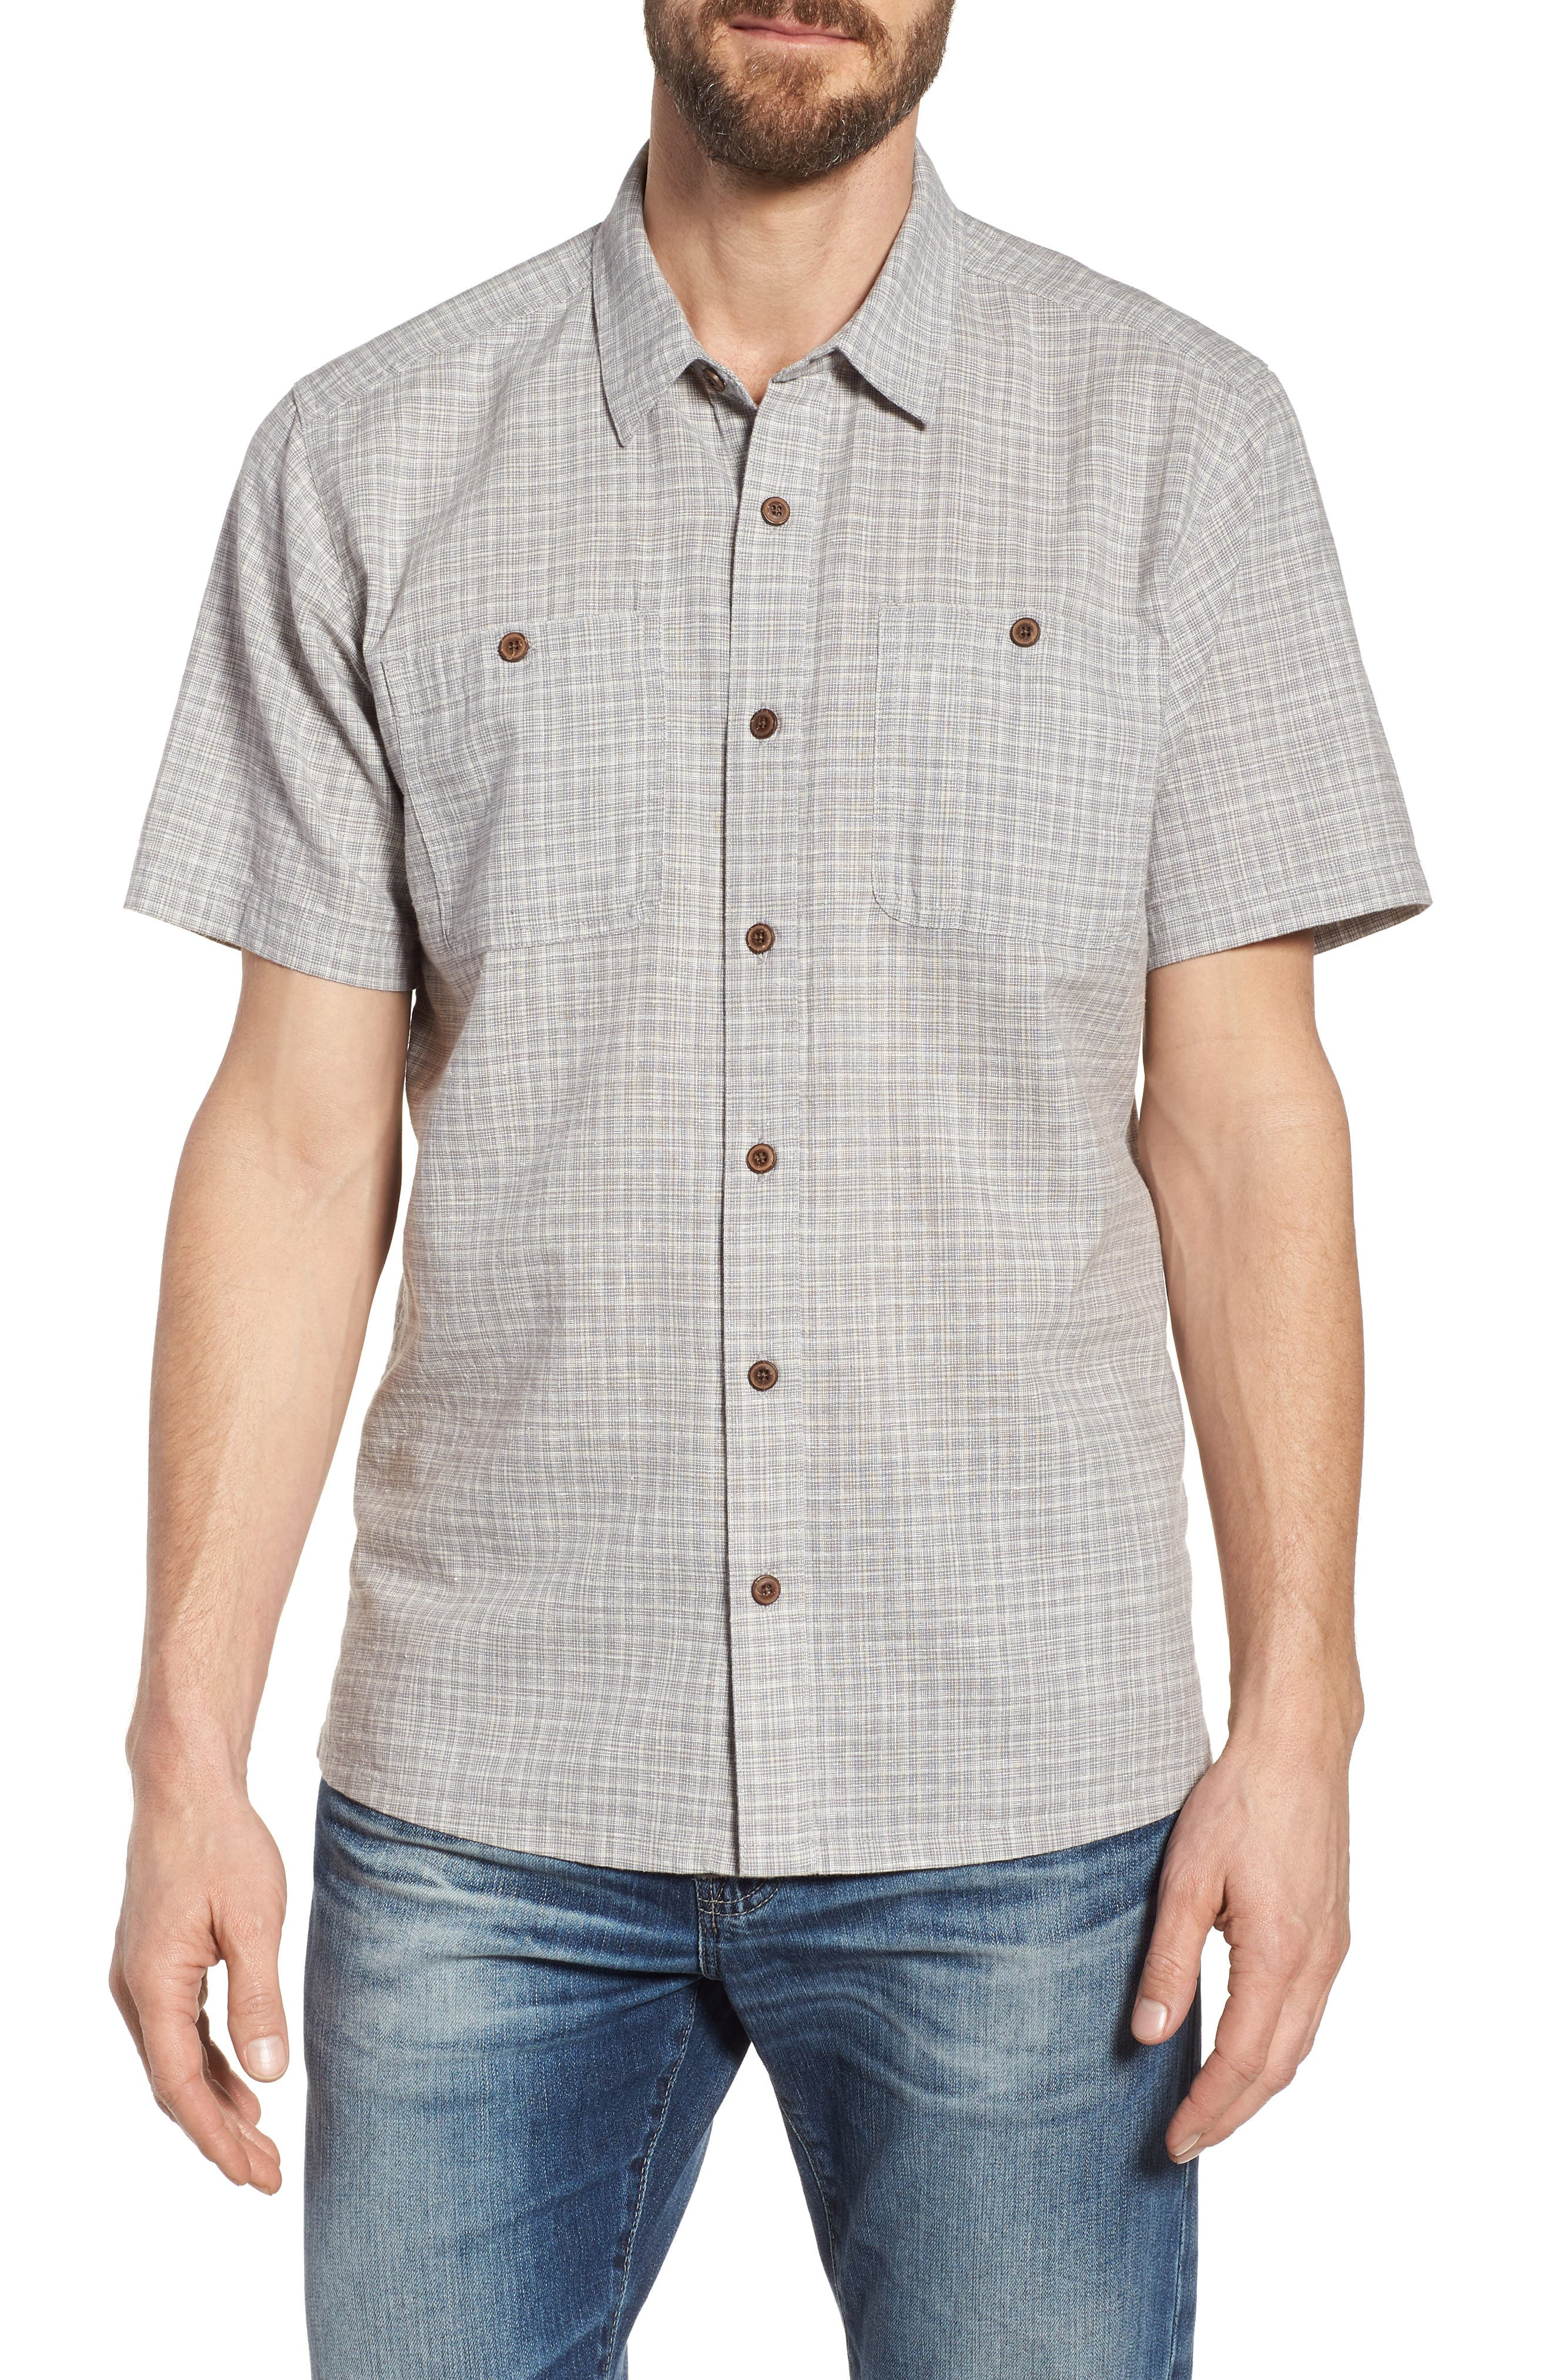 'Back Step' Regular Fit Check Short Sleeve Sport Shirt,                         Main,                         color, Tino/ Feather Grey